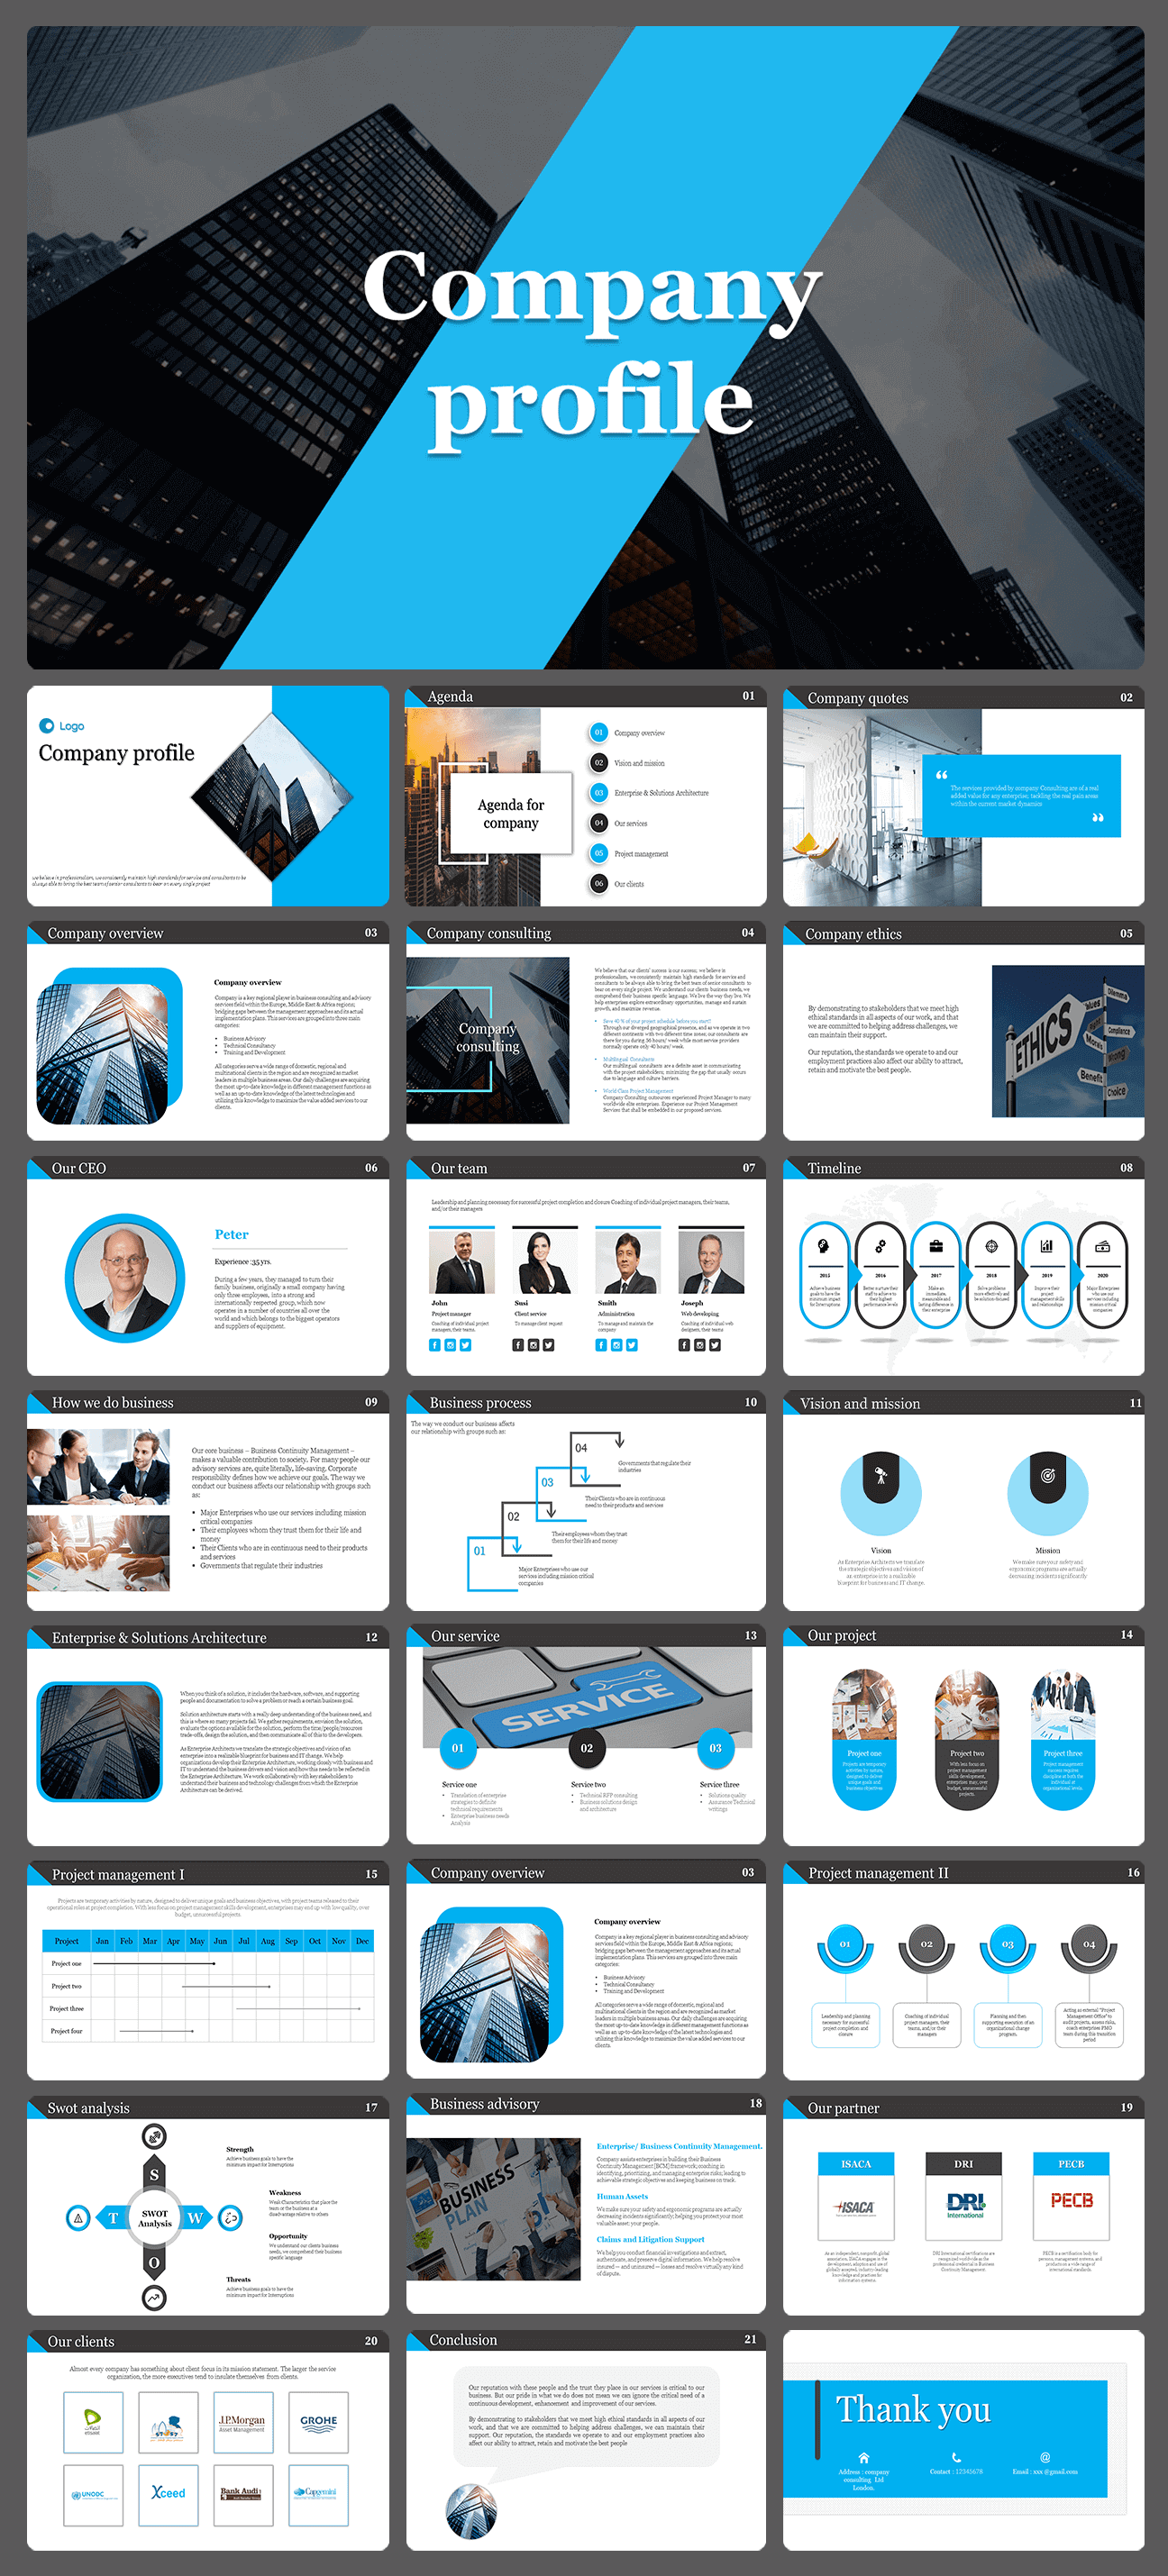 Company profile presentation template - slide Deck